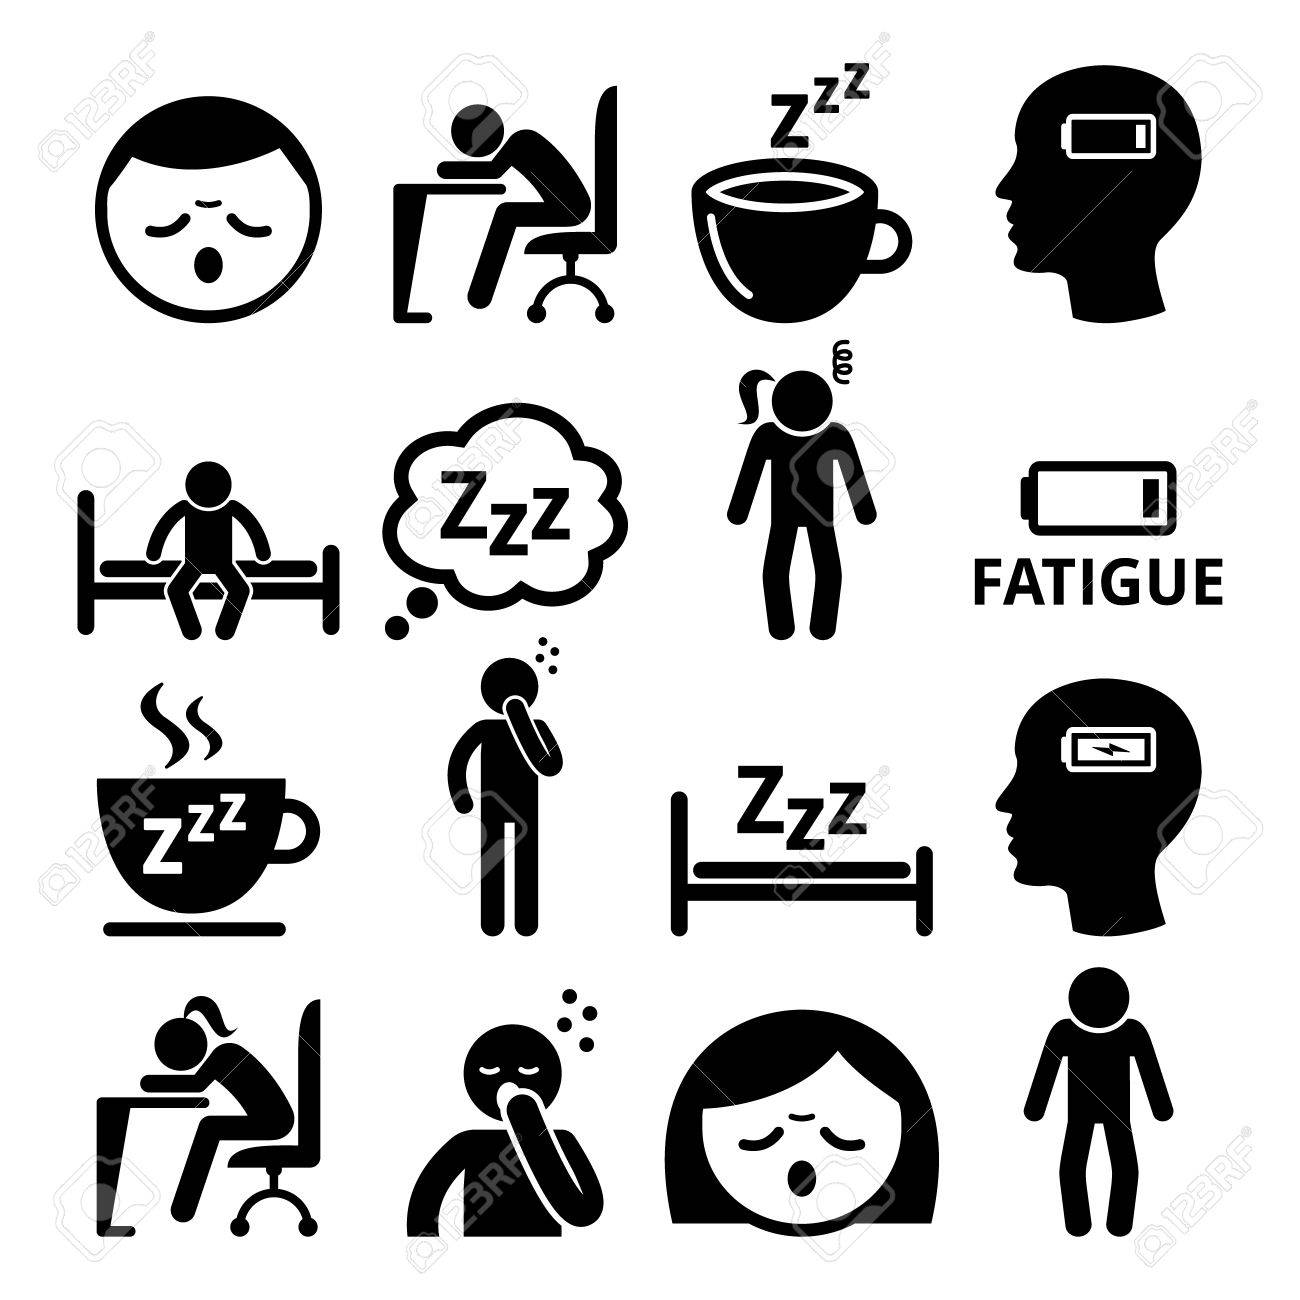 Run-down, sick people icons set isolated on white - 81365216